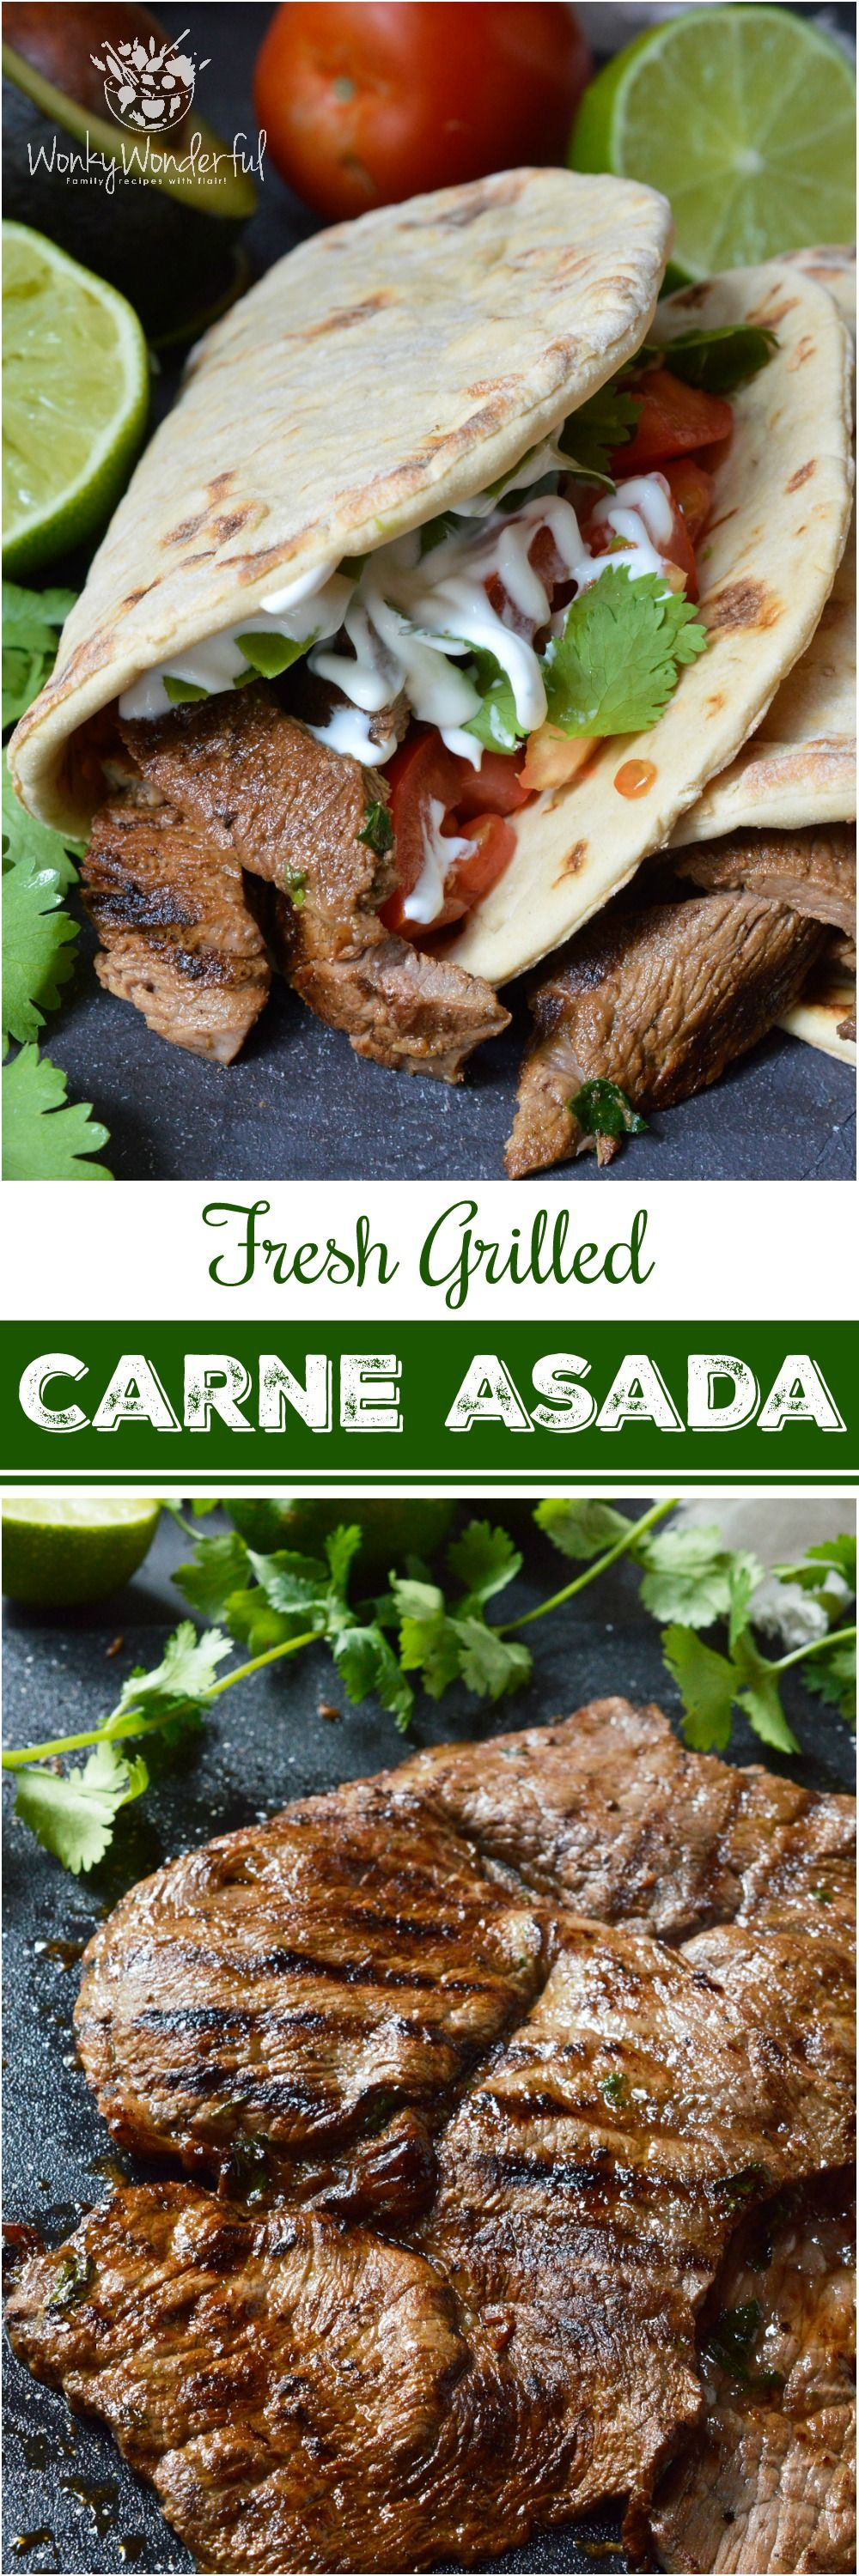 Nothing beats a great Carne Asada Recipe for the summertime grill season! This Carne Asada is made with thinly sliced round tip